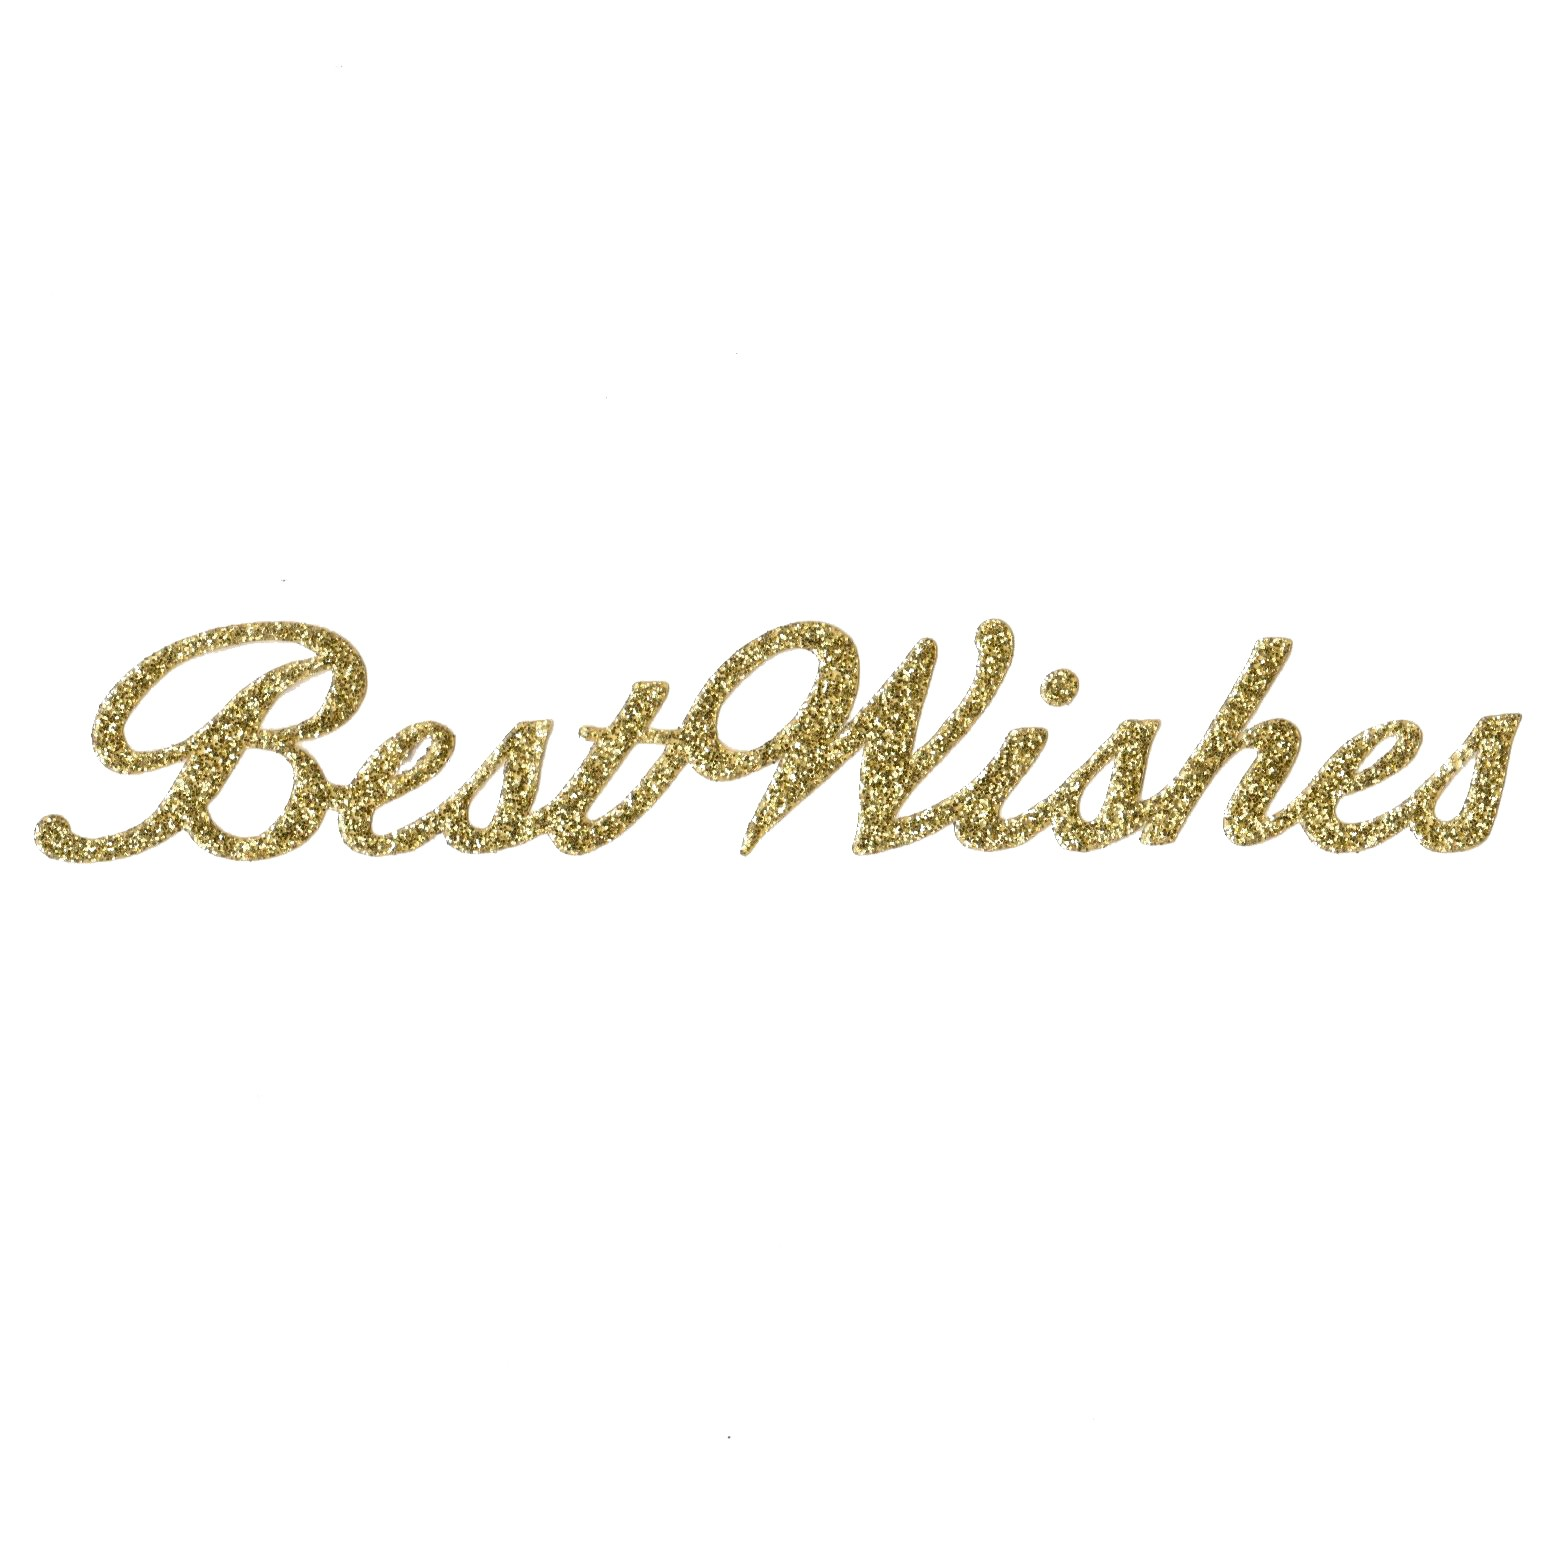 Best Wishes - Script Holidays, Special Occasions Words